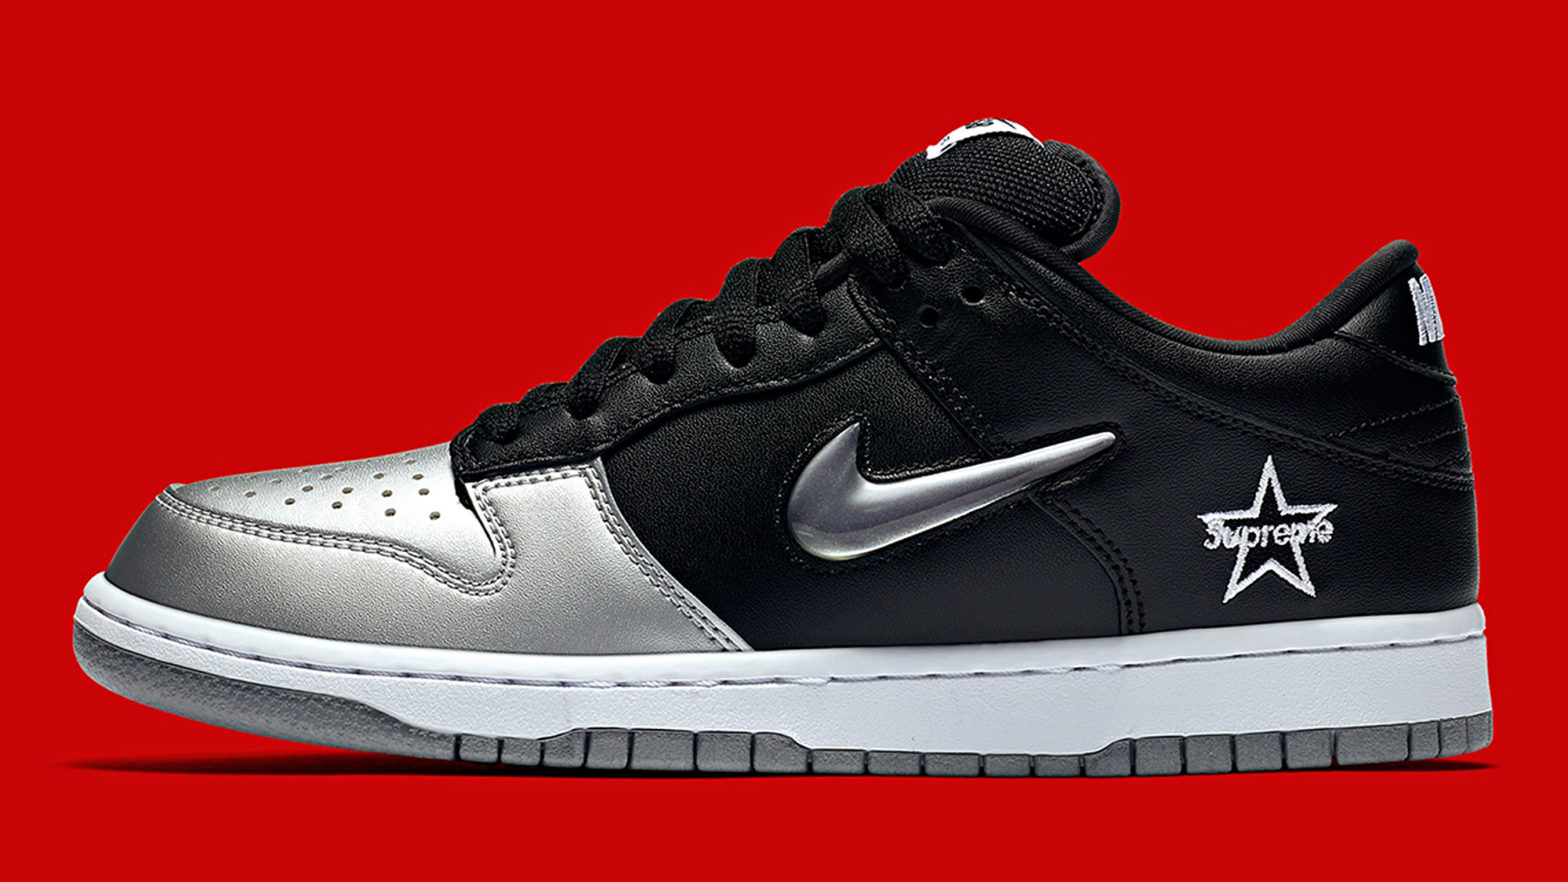 Supreme x Nike SB Dunk Low Sneakers